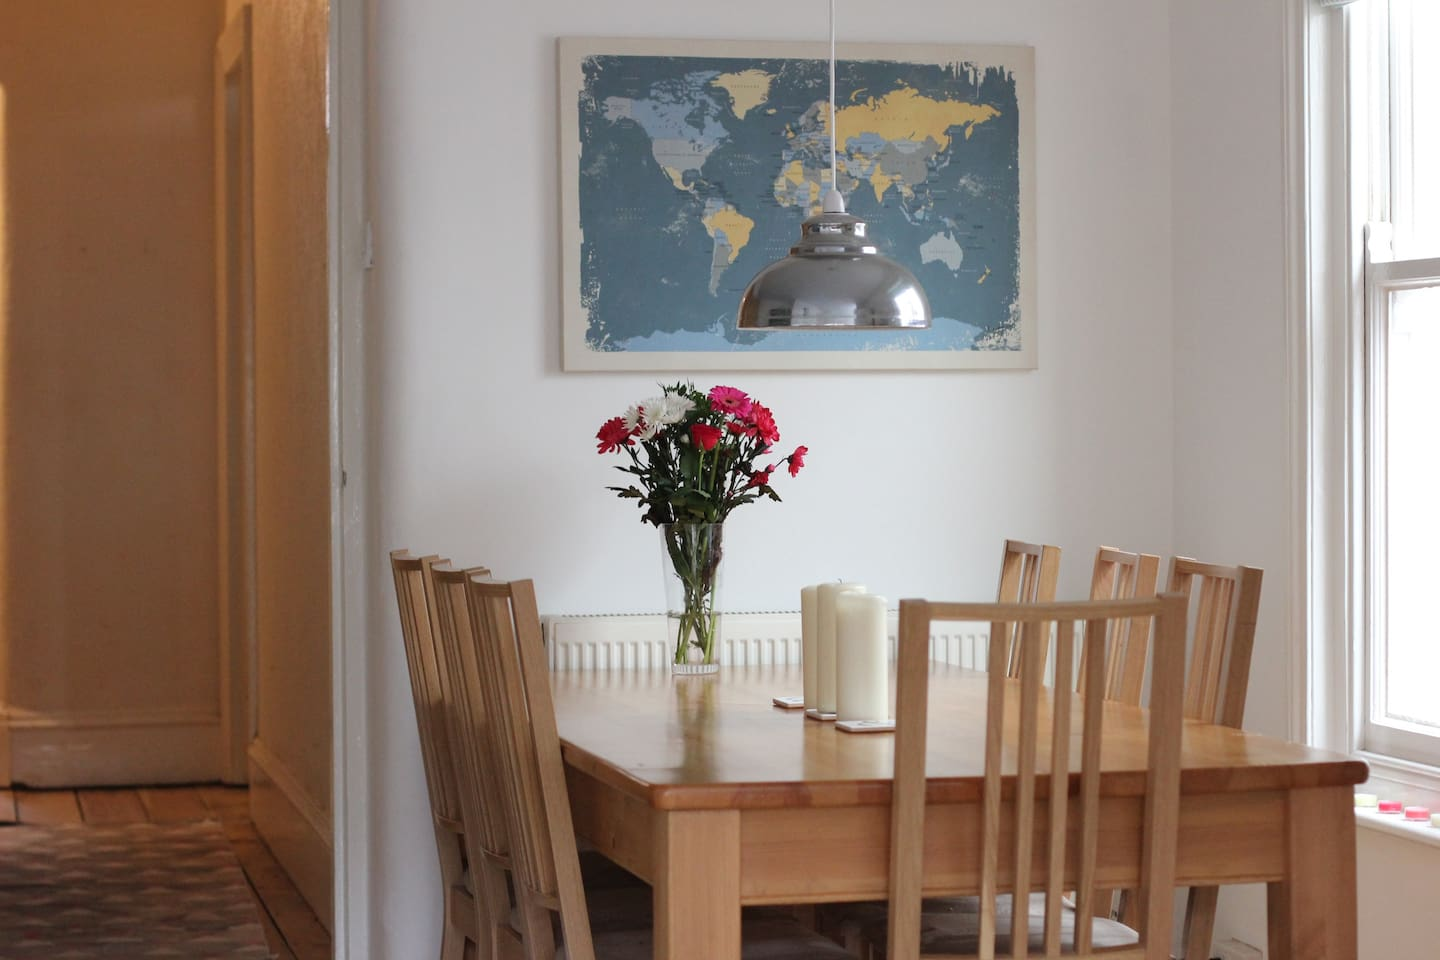 Dining area of the kitchen